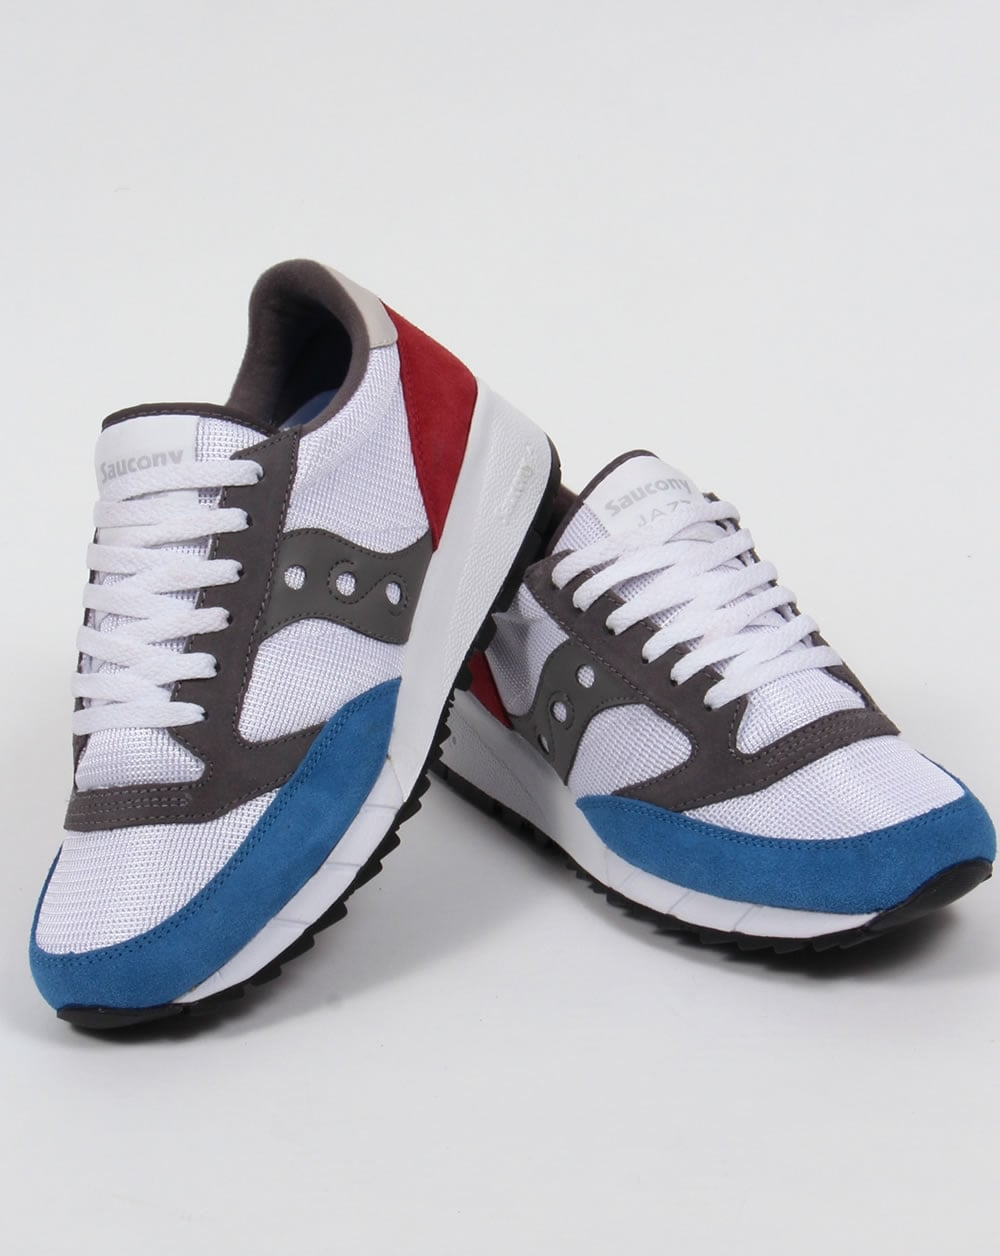 saucony jazz red white blue for sale